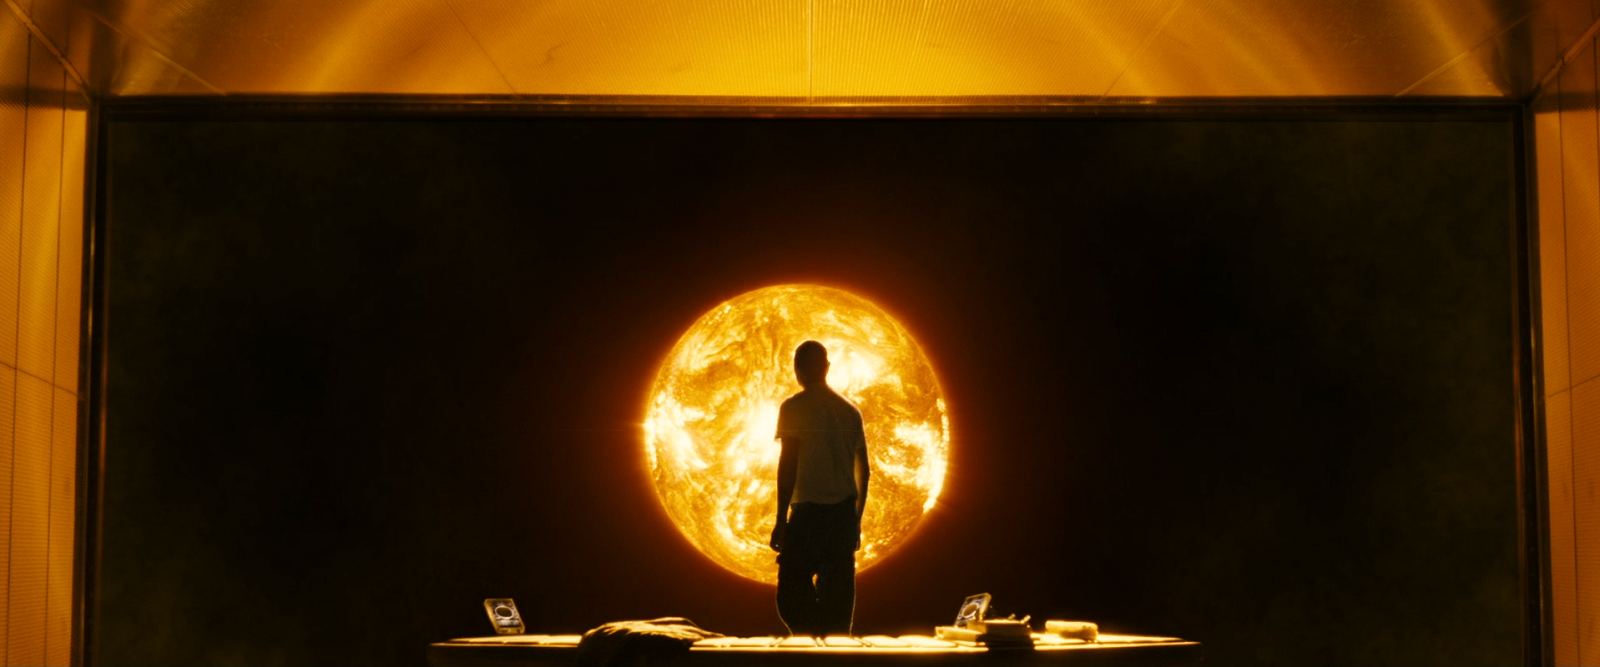 A man silhouetted in front of a screen displaying the sun